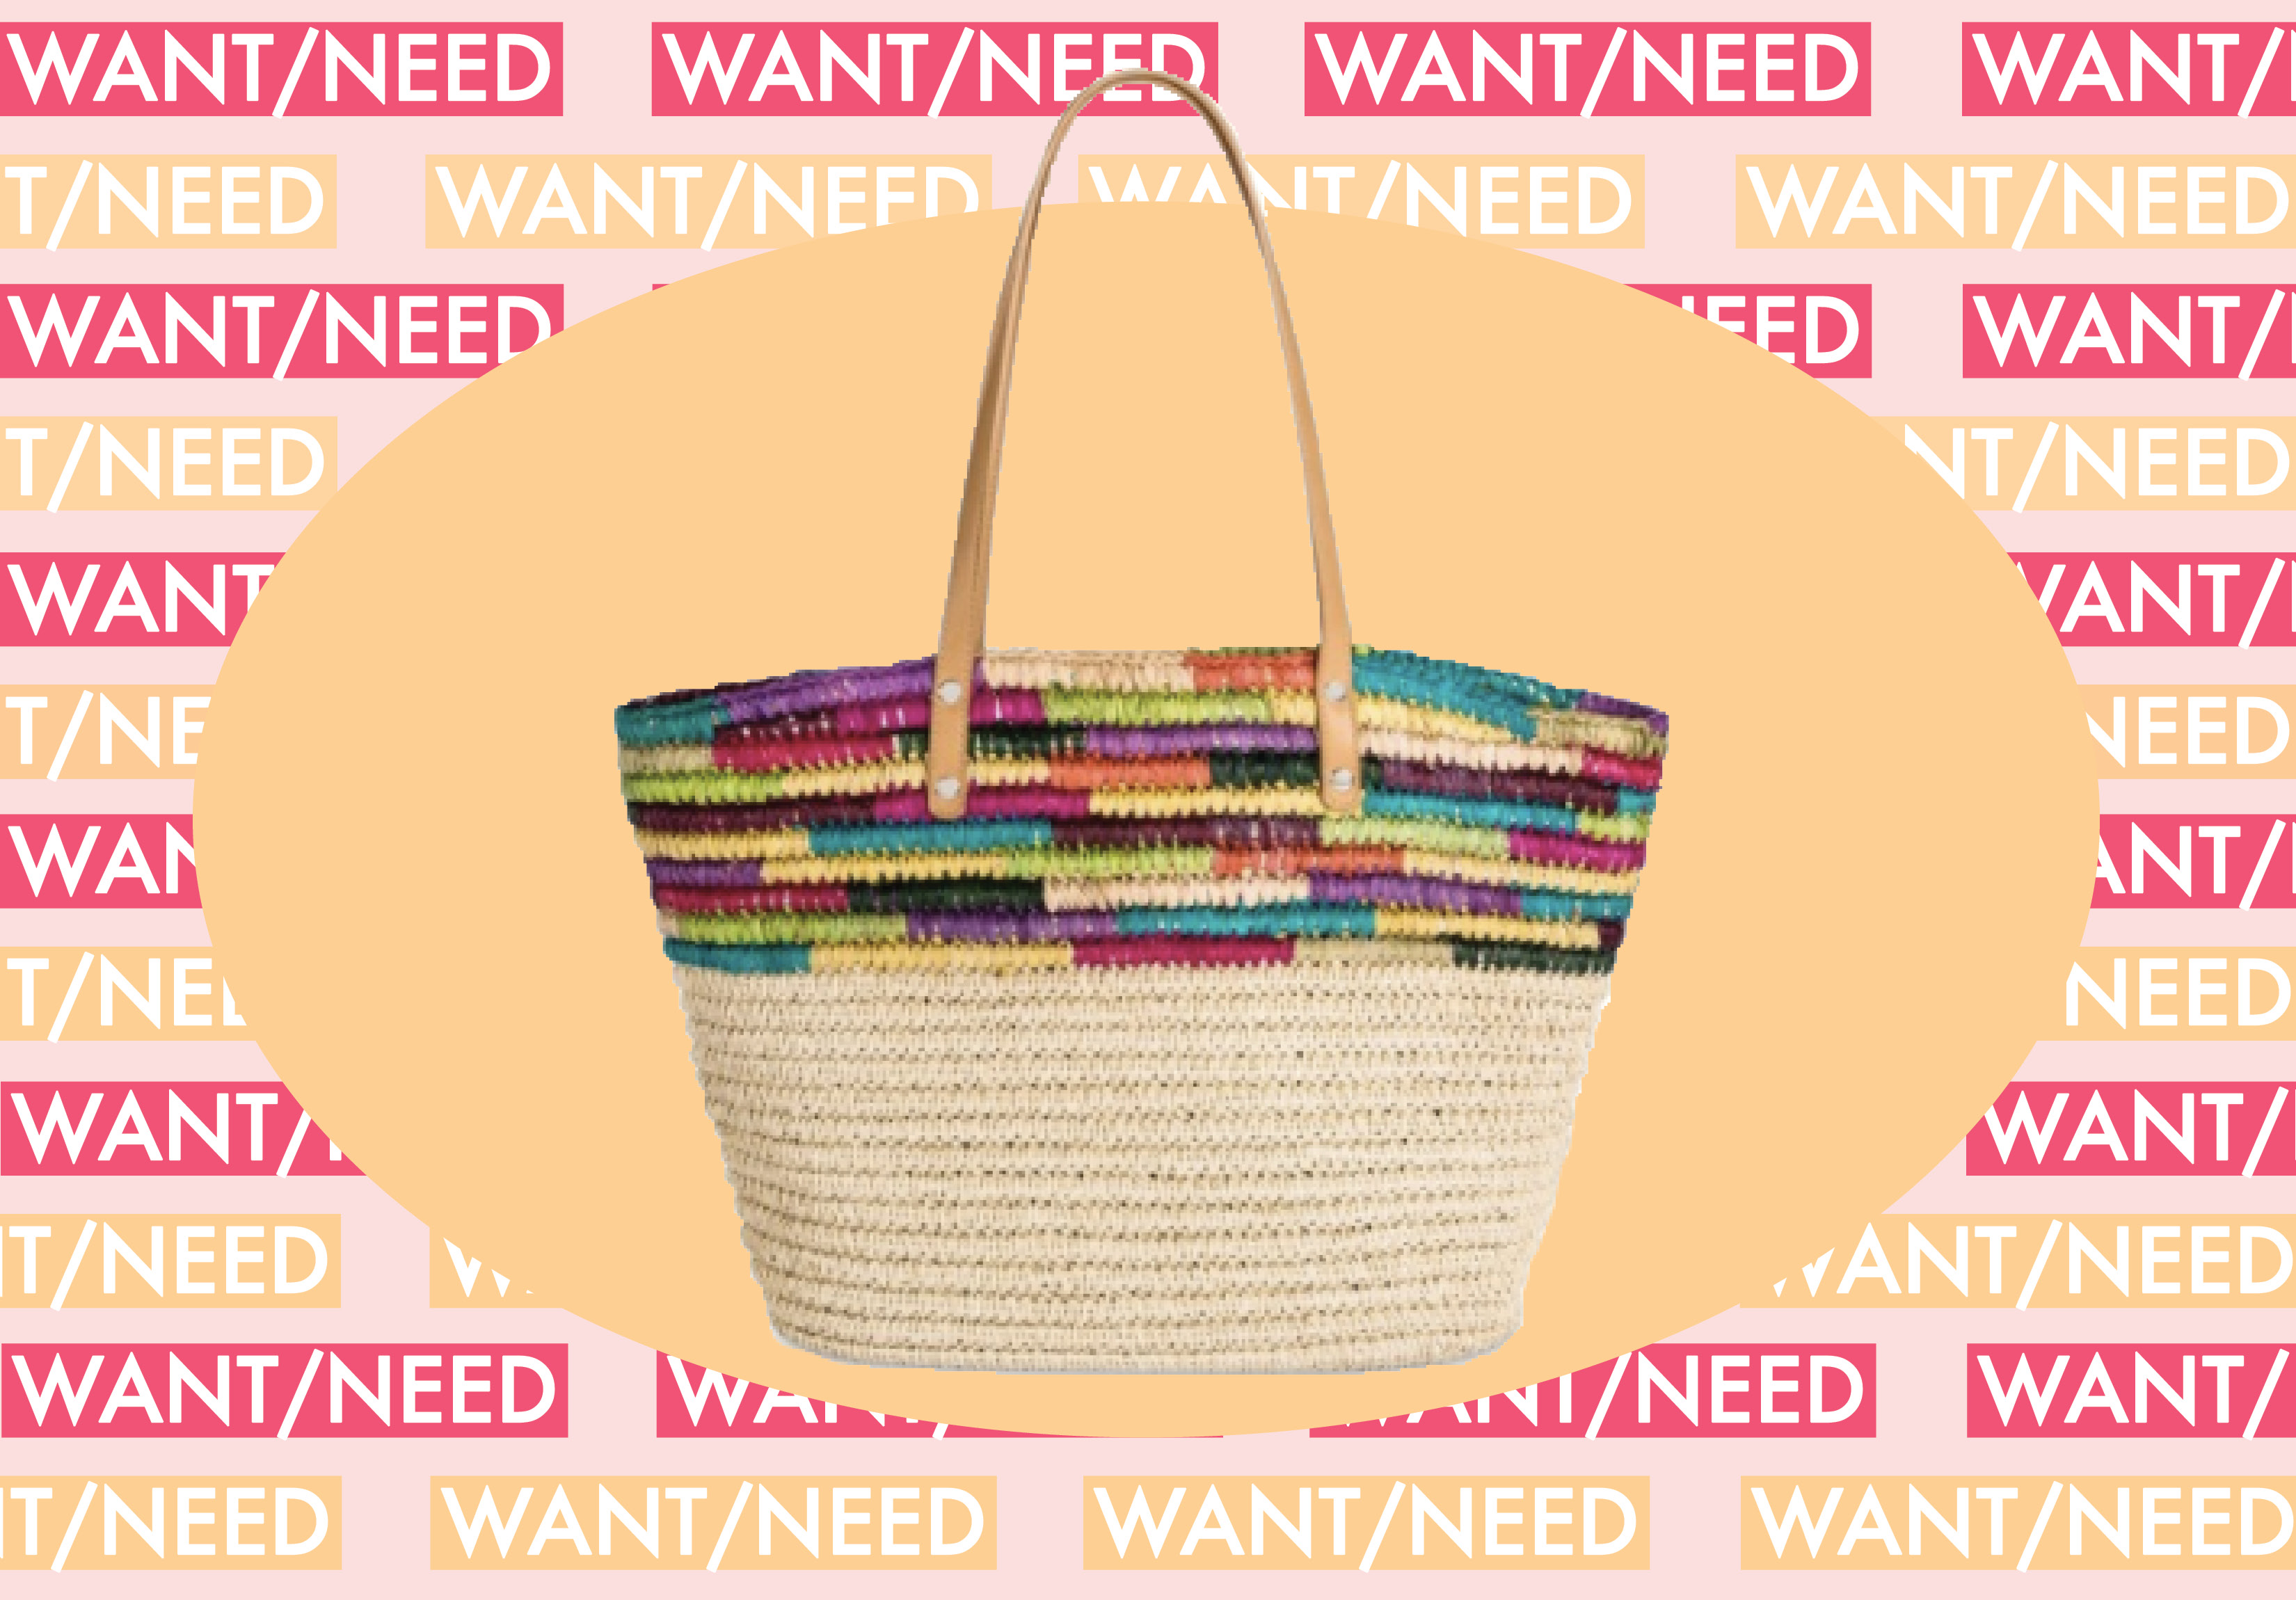 WANT/NEED: A straw tote bag big enough to hold all your beach reads, and more stuff you want to buy